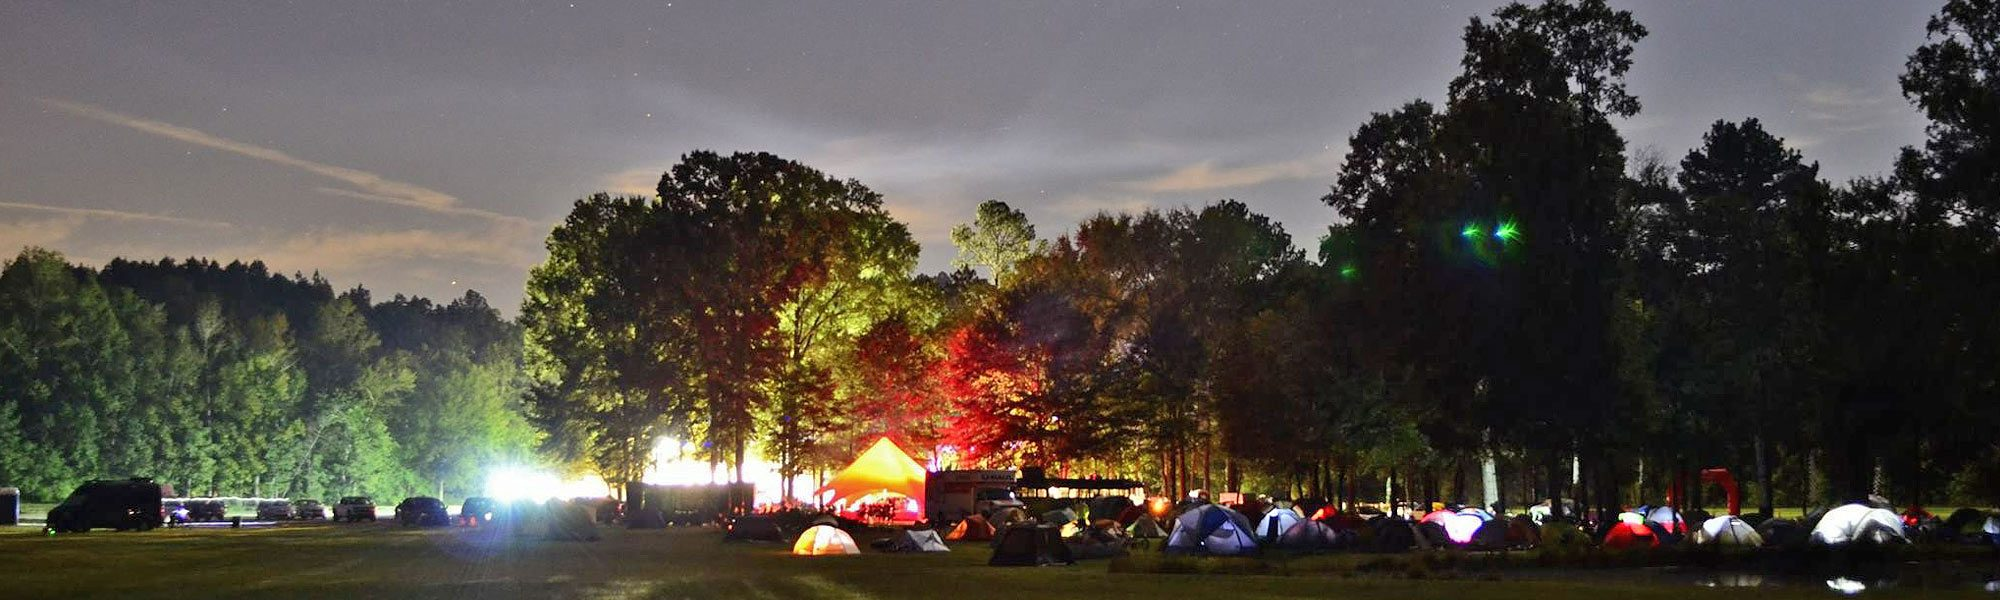 Camping at Skydive Spaceland Atlanta